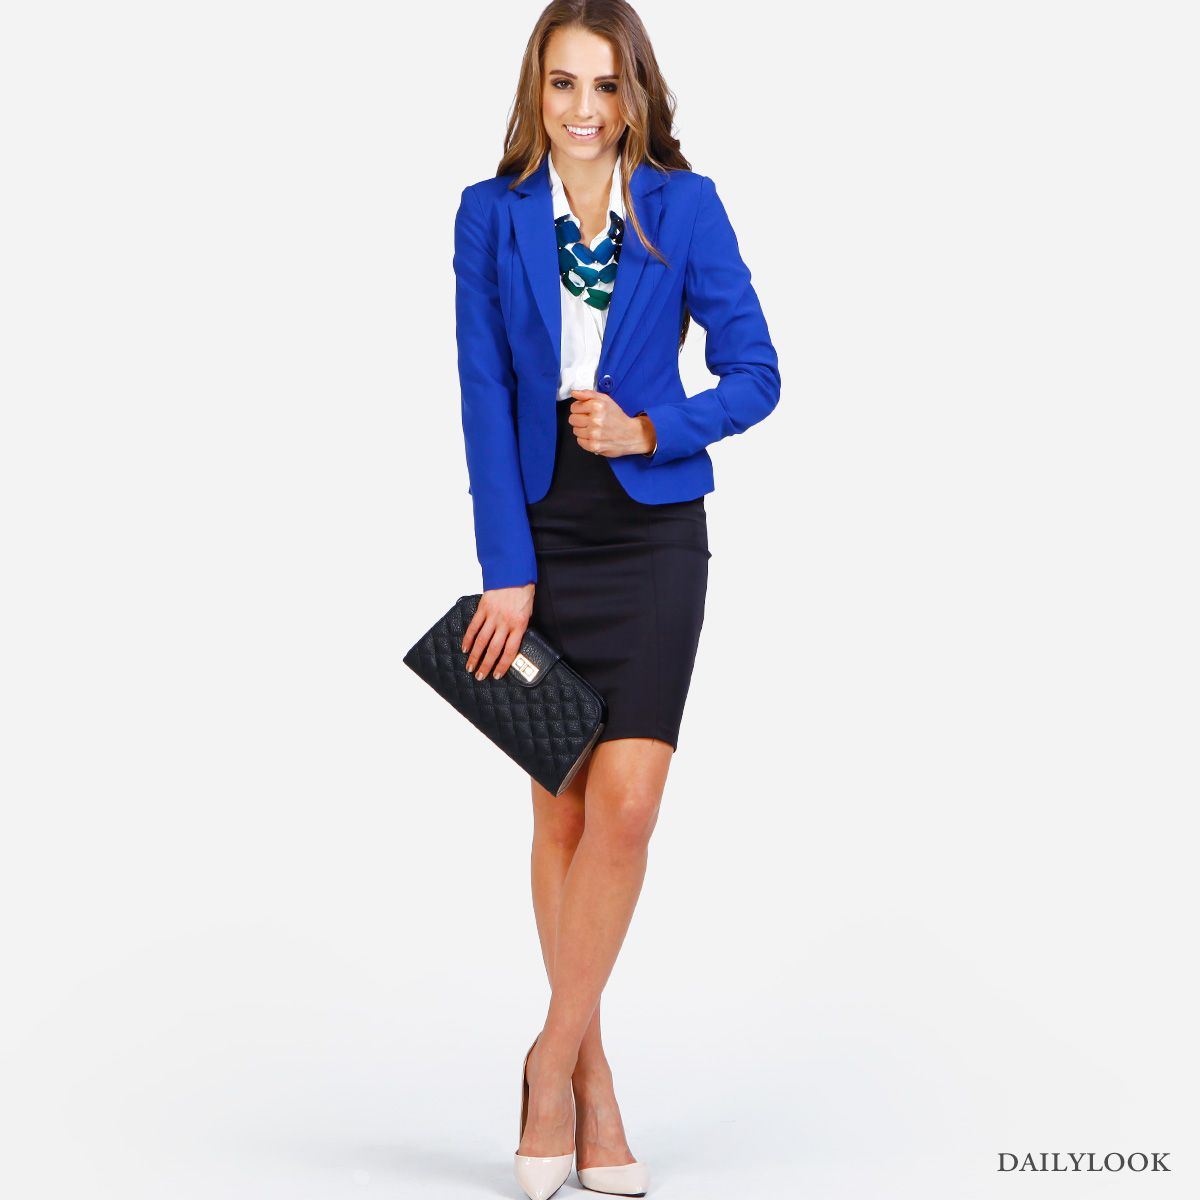 e50e79106 Royal blue blazer, pencil skirt, statement necklace, clutch | pencil ...